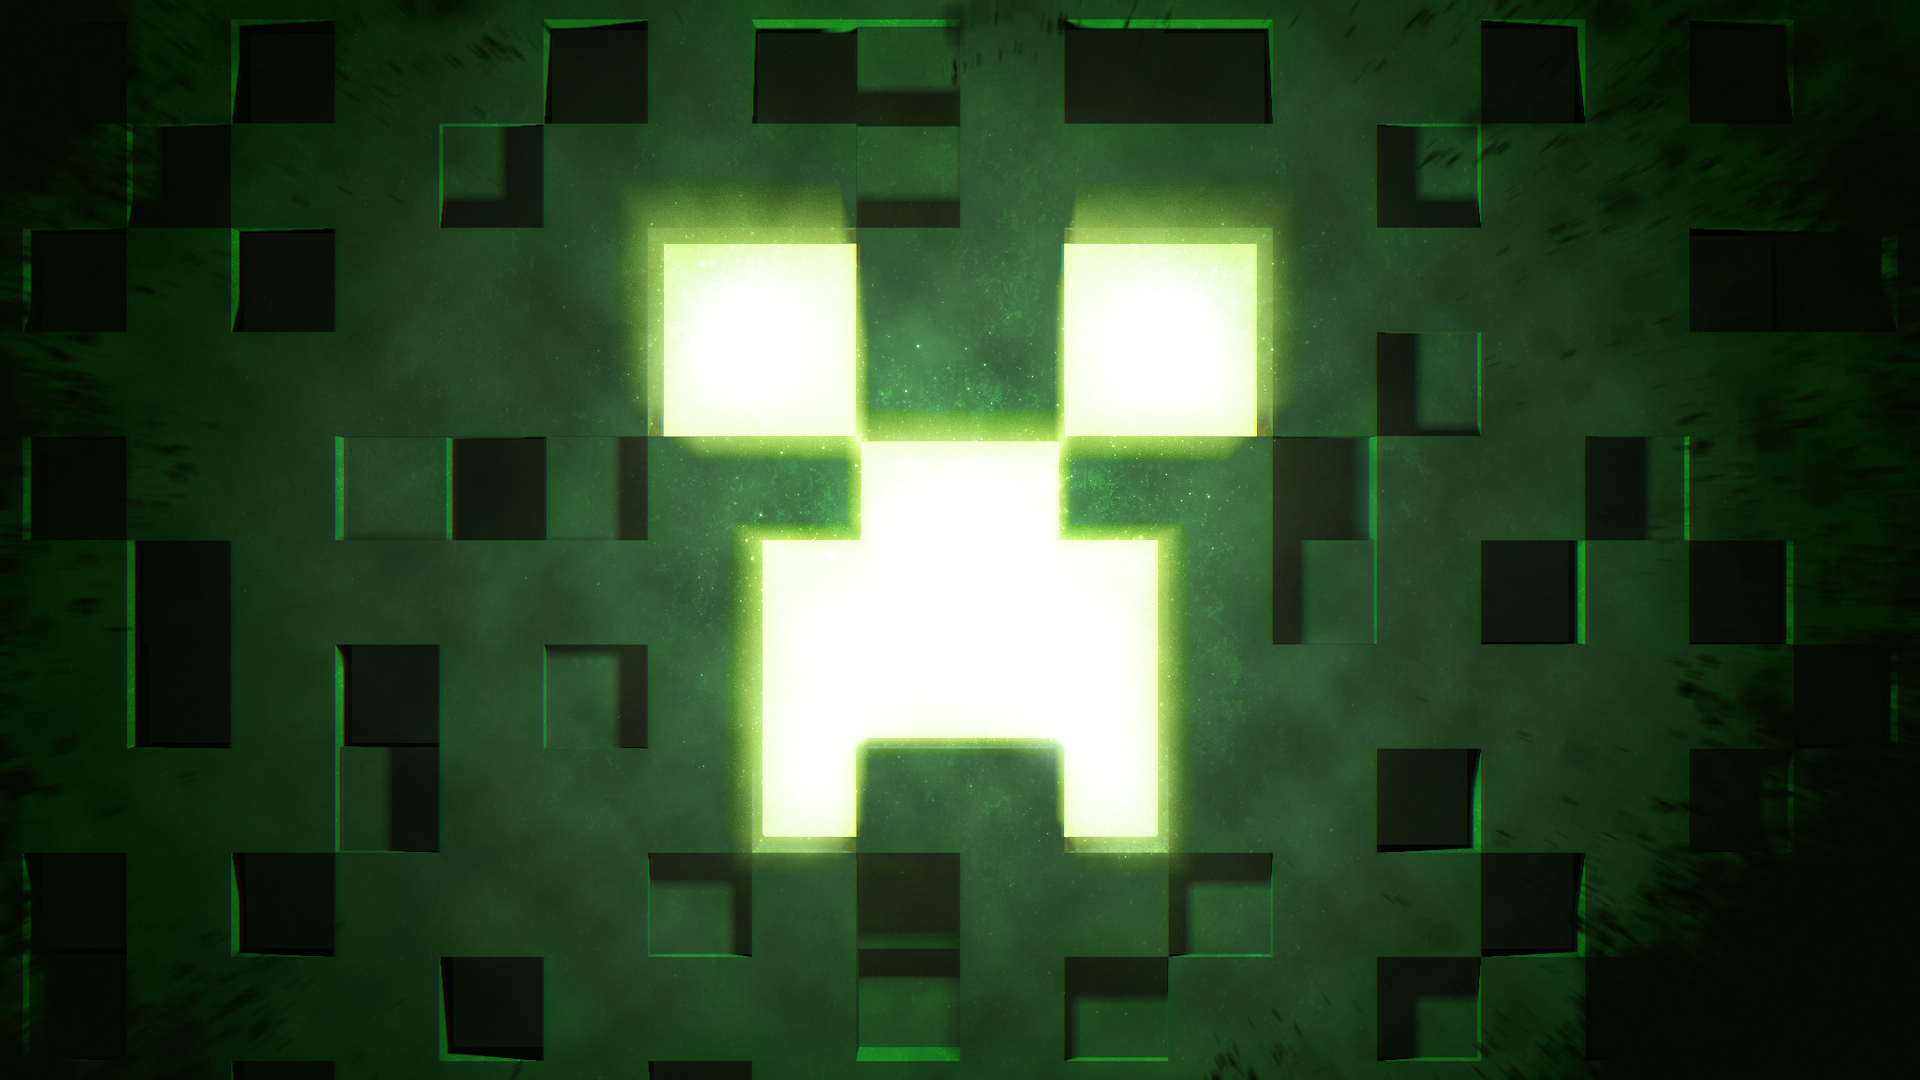 Creeper | With PSD and C4D files by Mackaged